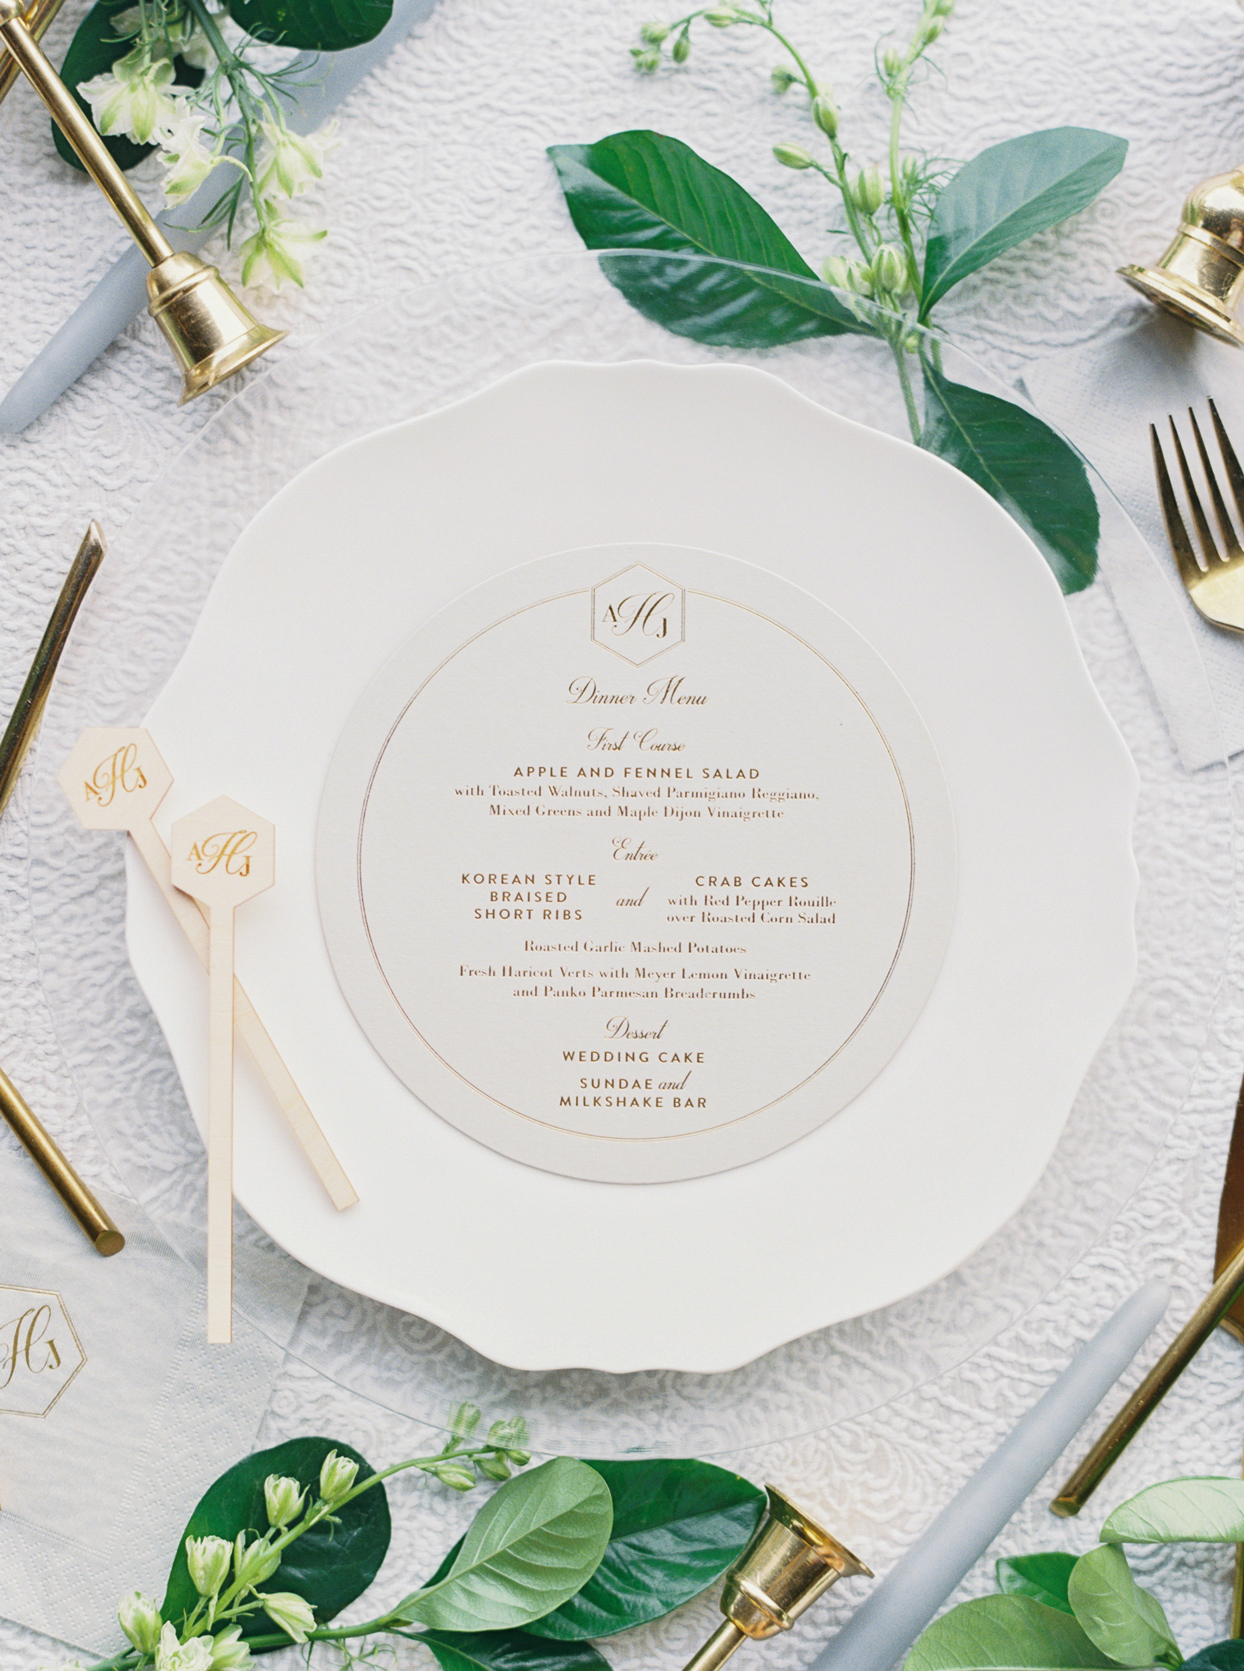 wedding reception menu with gold writing on white place setting with greenery accents